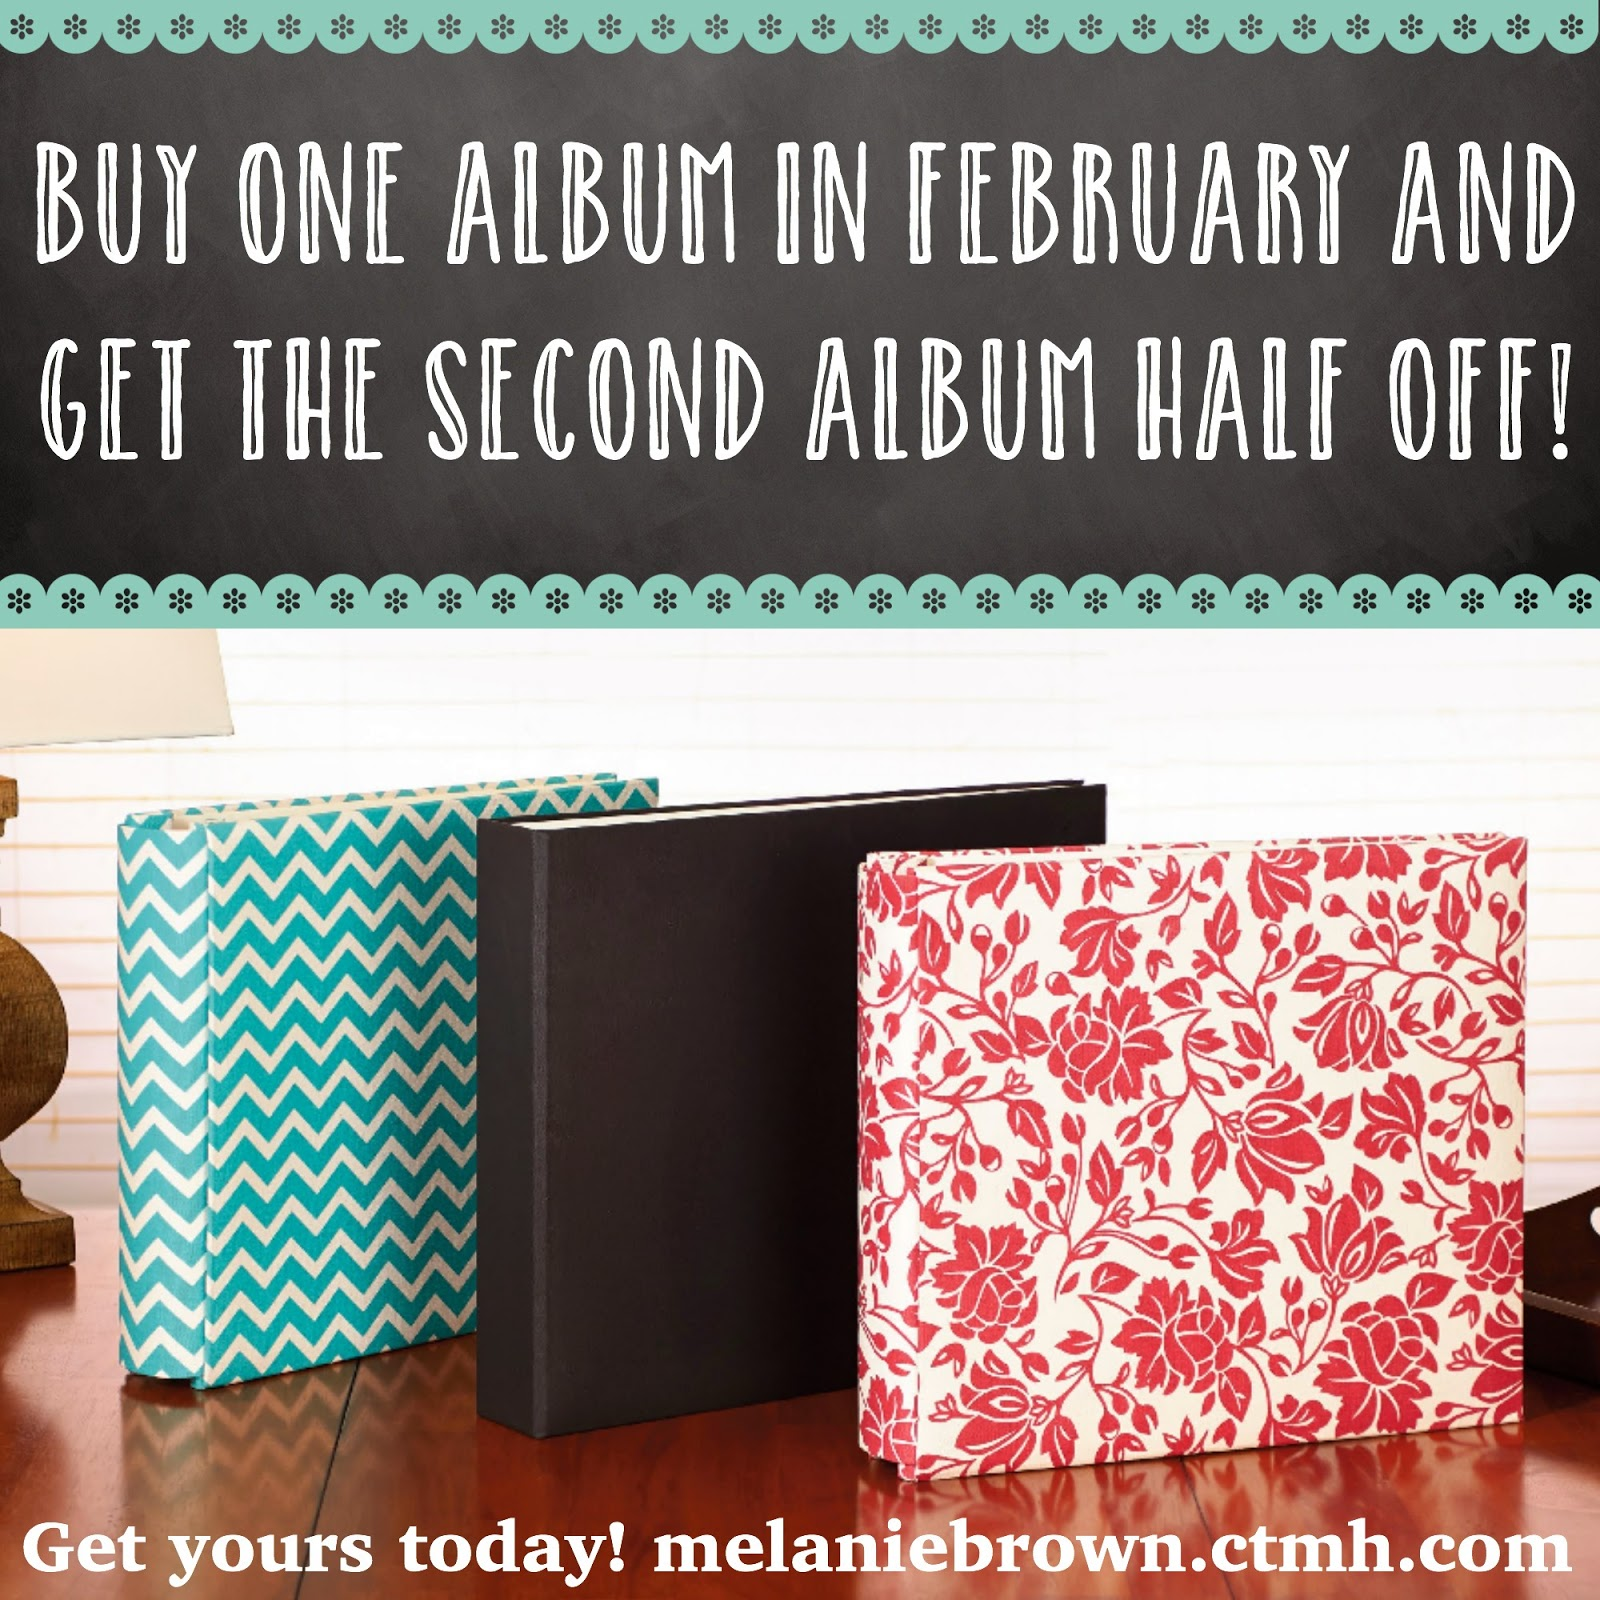 Buy One Get One half off albums